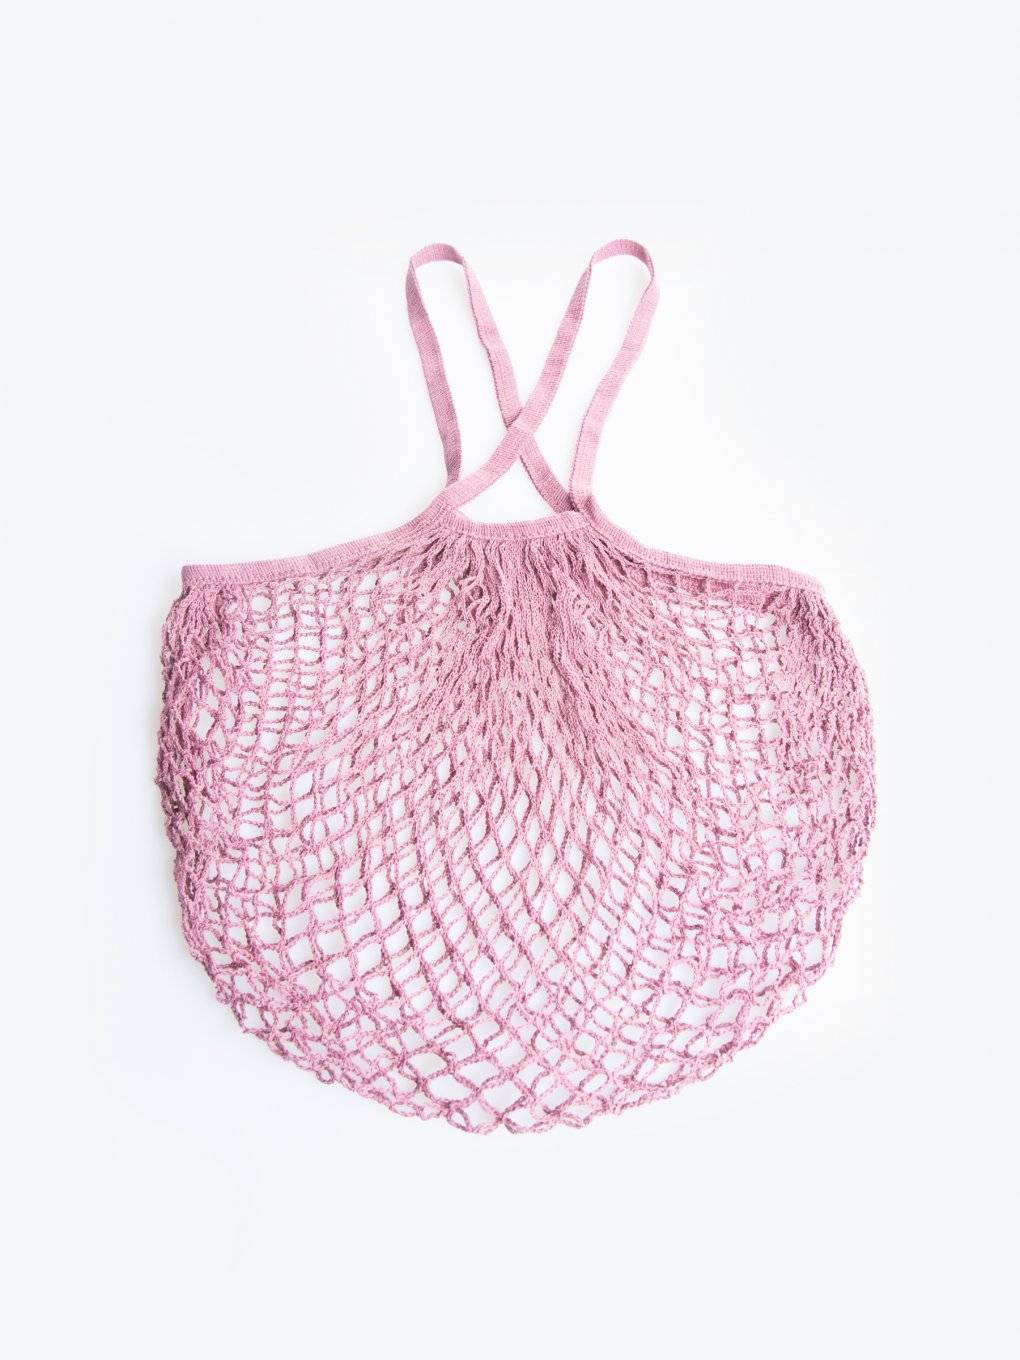 Fish net shopping bag